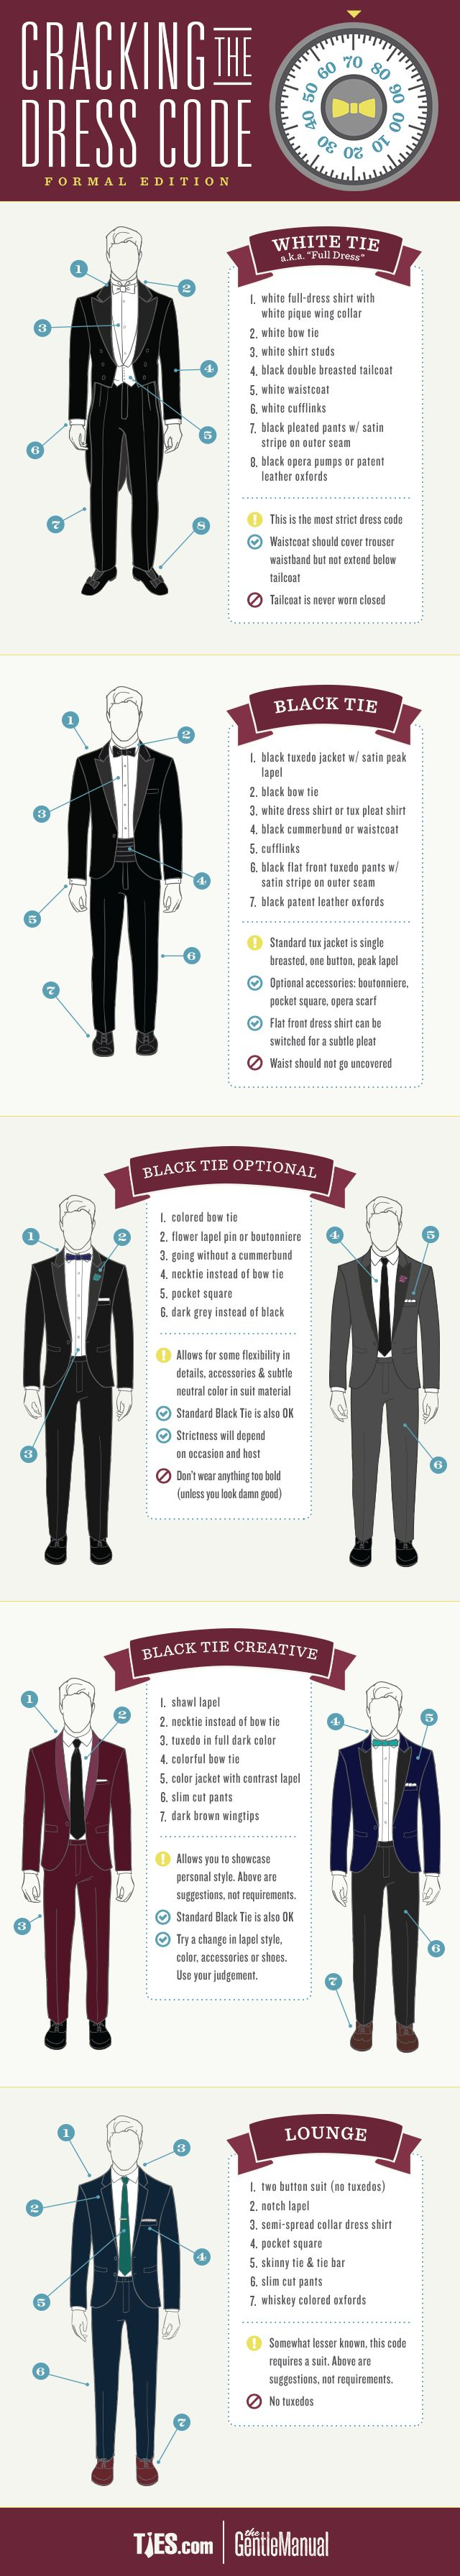 Cracking The Dress Code Formal Edition: An Infographic | Raddest Men's Fashion Looks On The Internet: http://www.raddestlooks.org